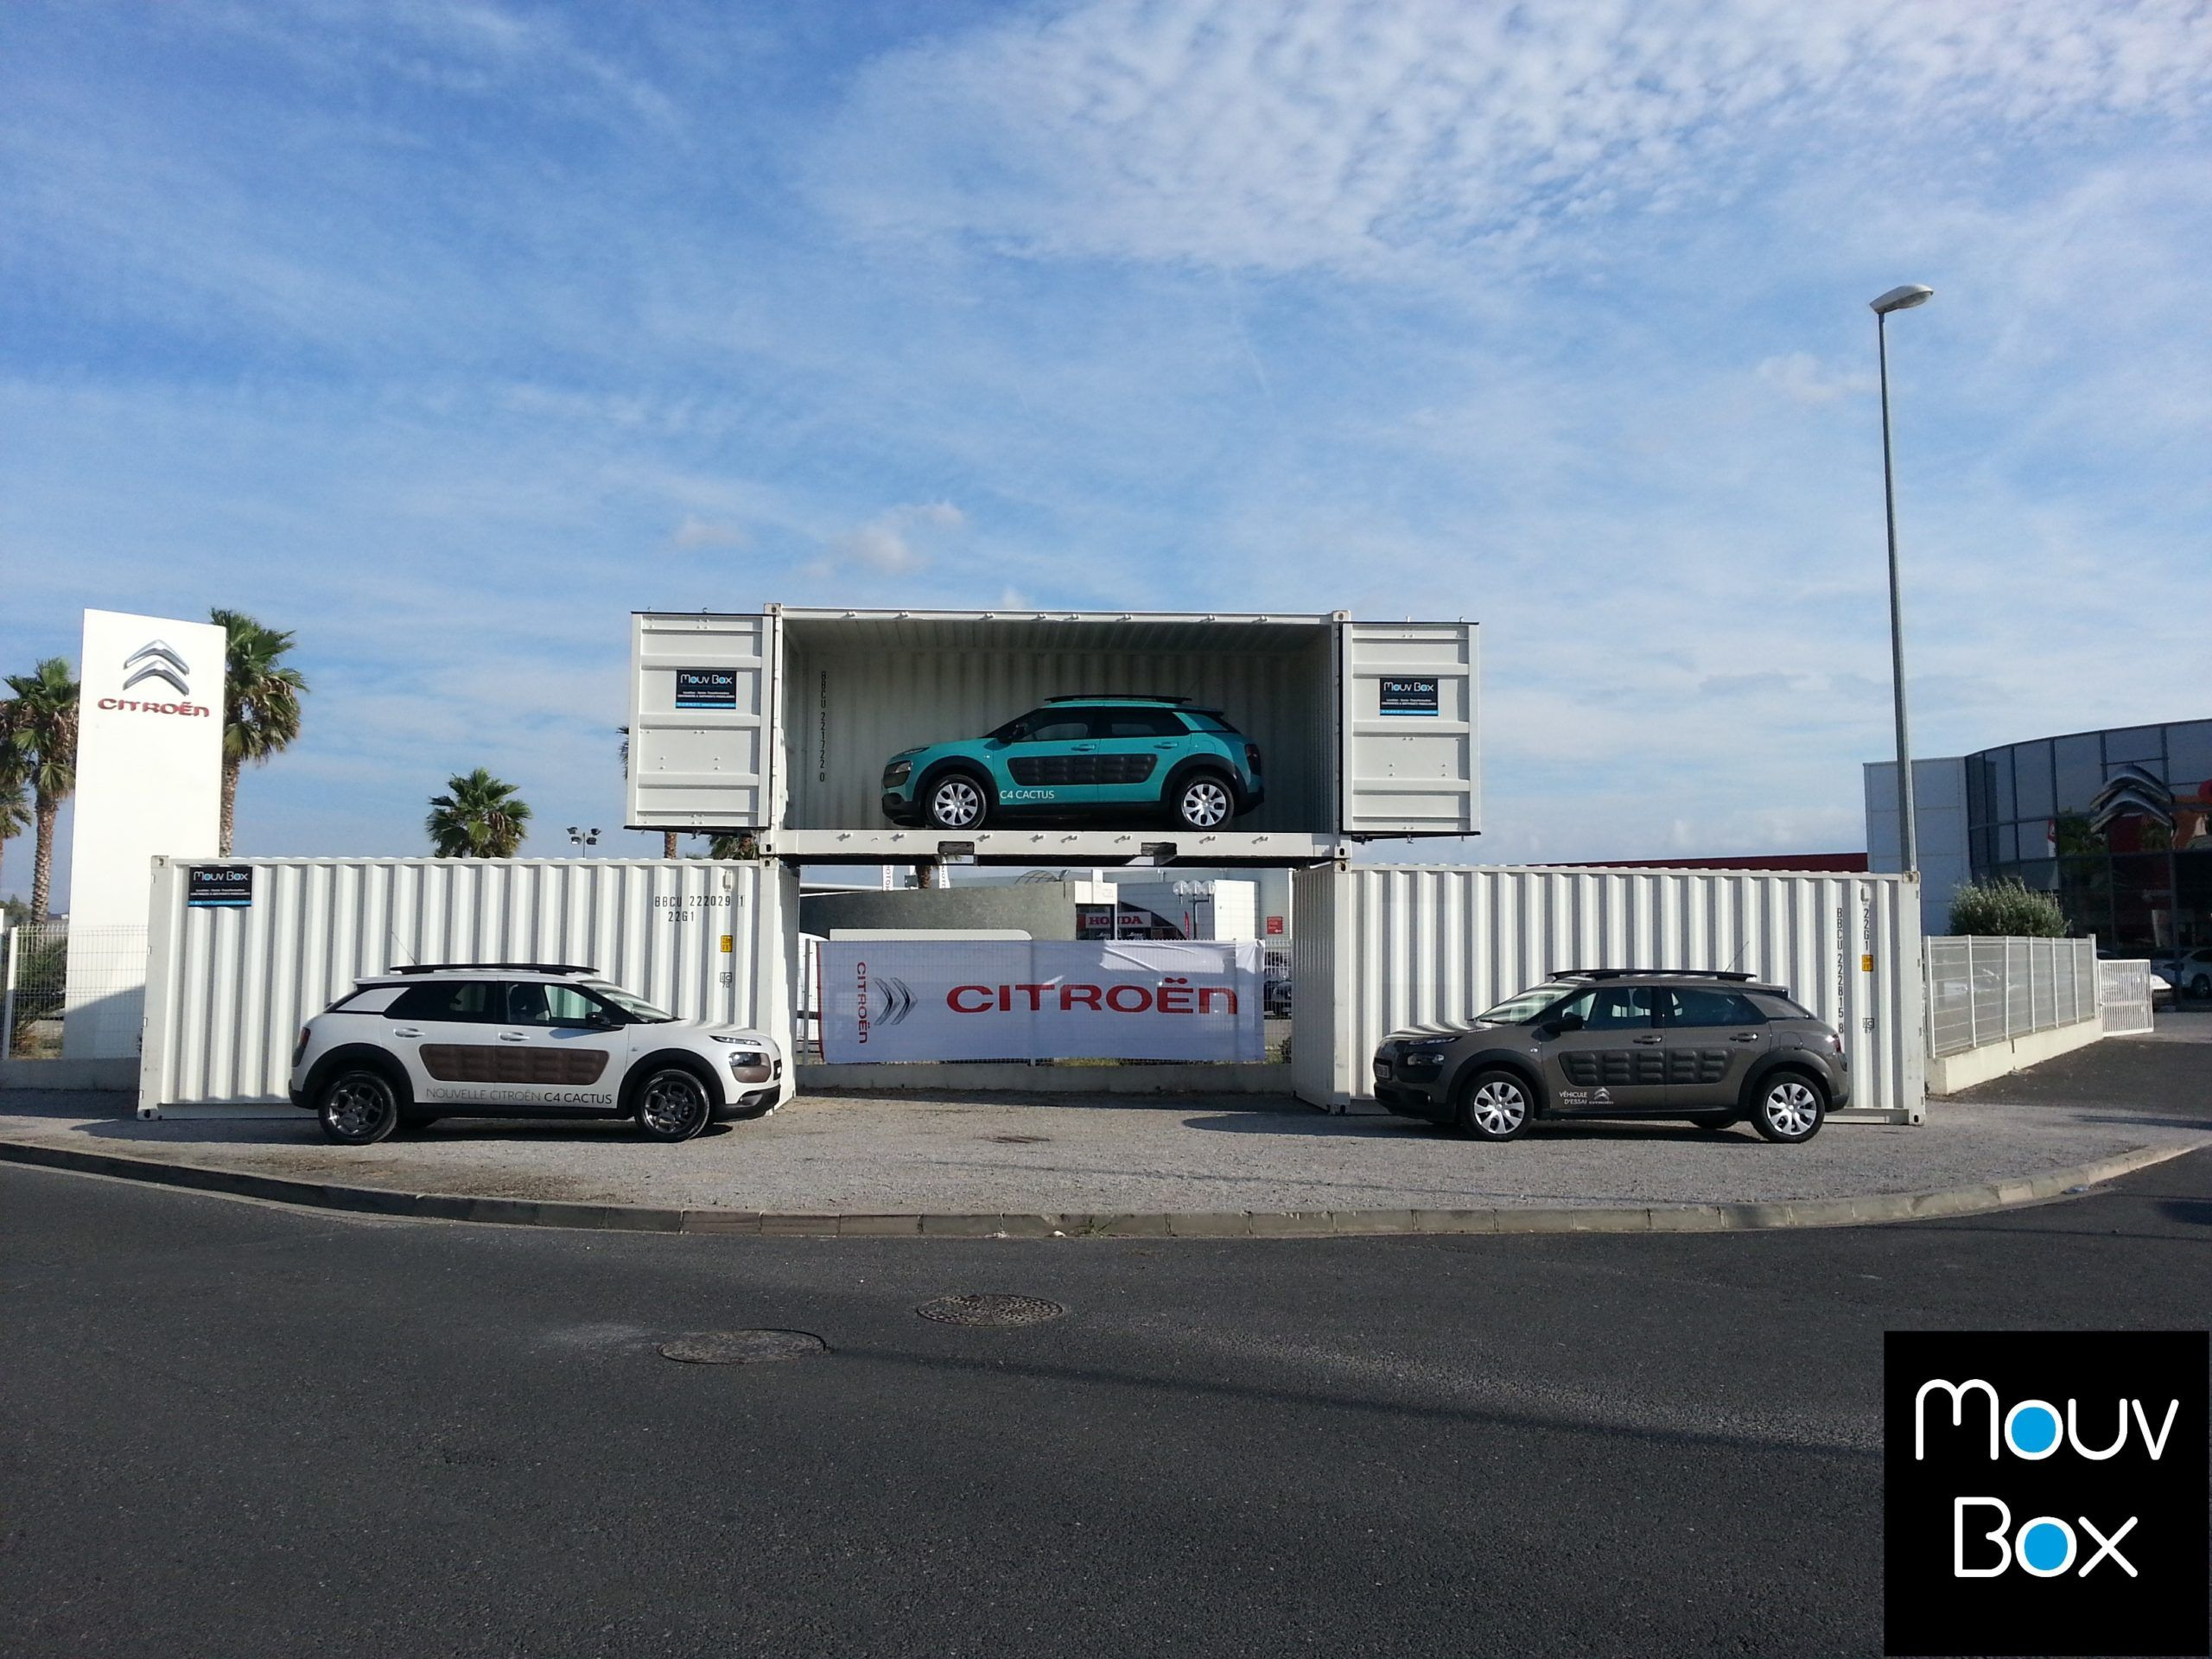 Mouvbox france mouvbox met en sc ne citro n cactus for Porte ouverte citroen